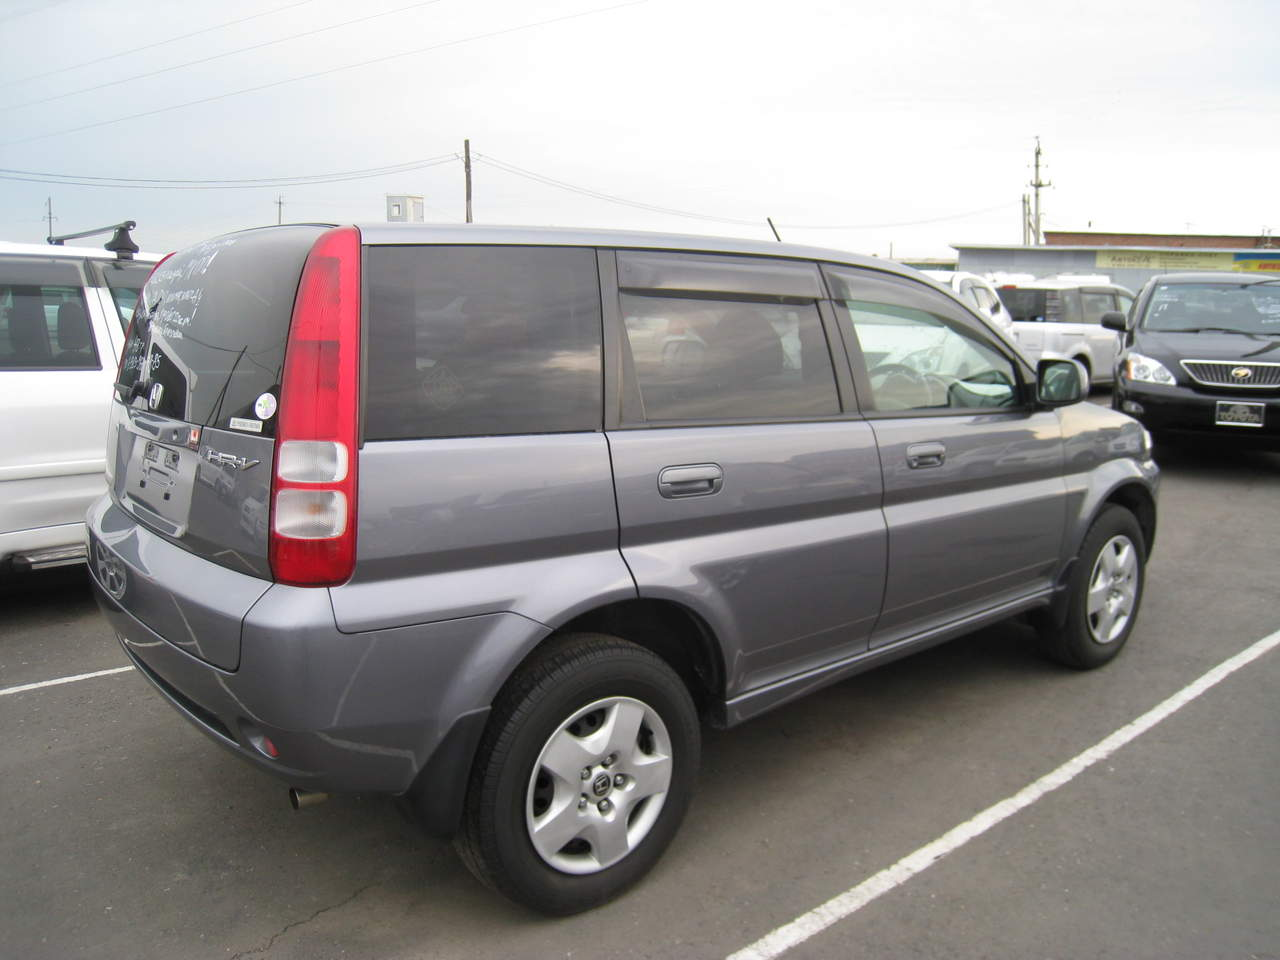 Car Door Window Replacement Cost >> 2004 Honda HR-V Pictures, 1.6l., Gasoline, FF, Manual For Sale